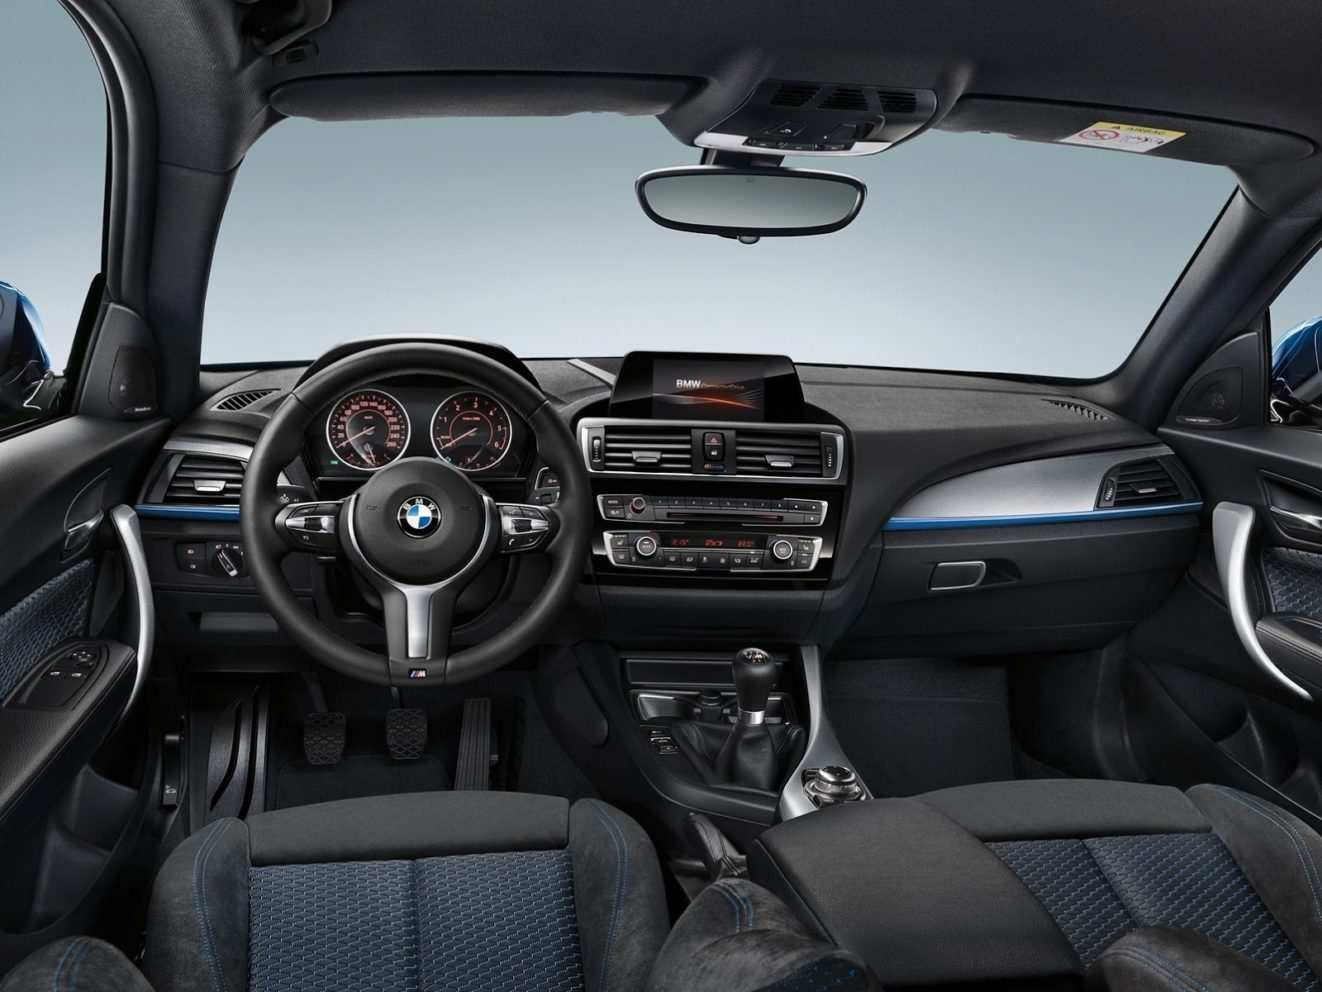 52 Gallery of 2019 Bmw 1 Series Interior Engine with 2019 Bmw 1 Series Interior